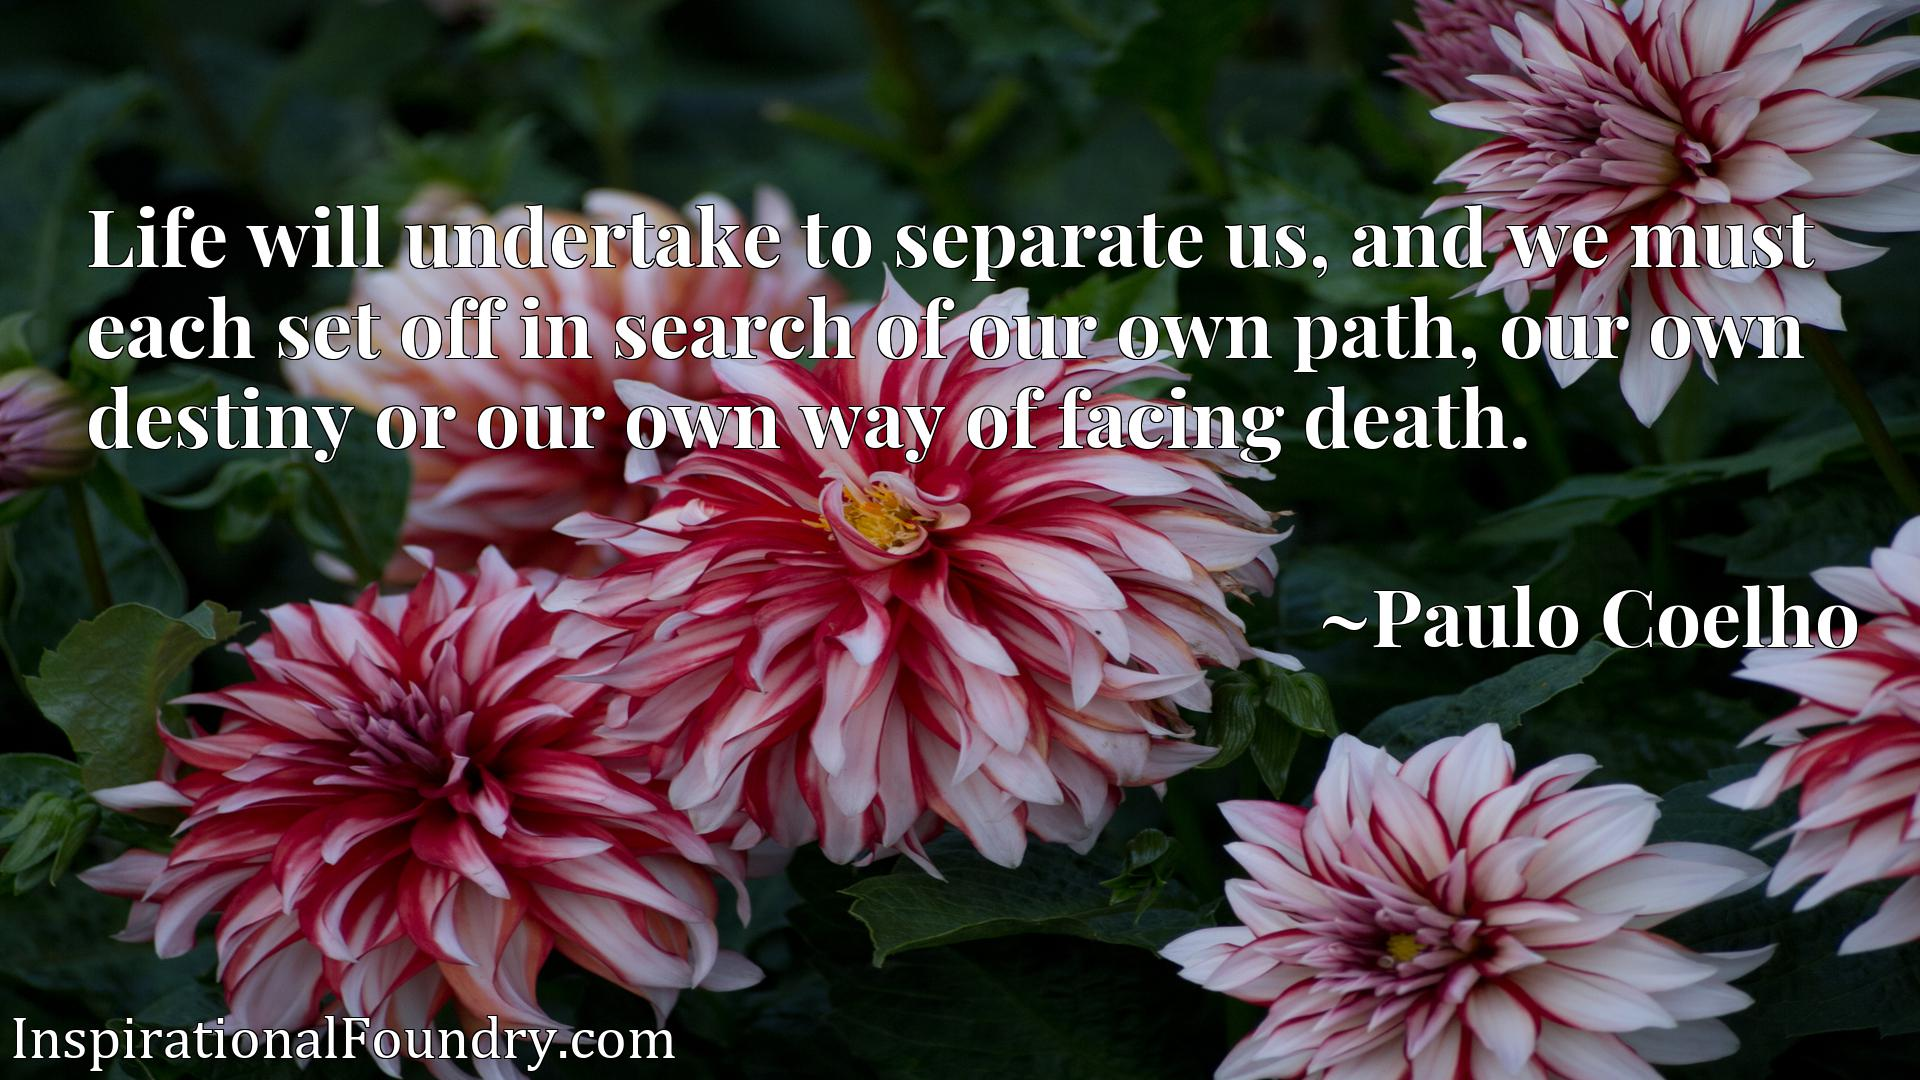 Life will undertake to separate us, and we must each set off in search of our own path, our own destiny or our own way of facing death.